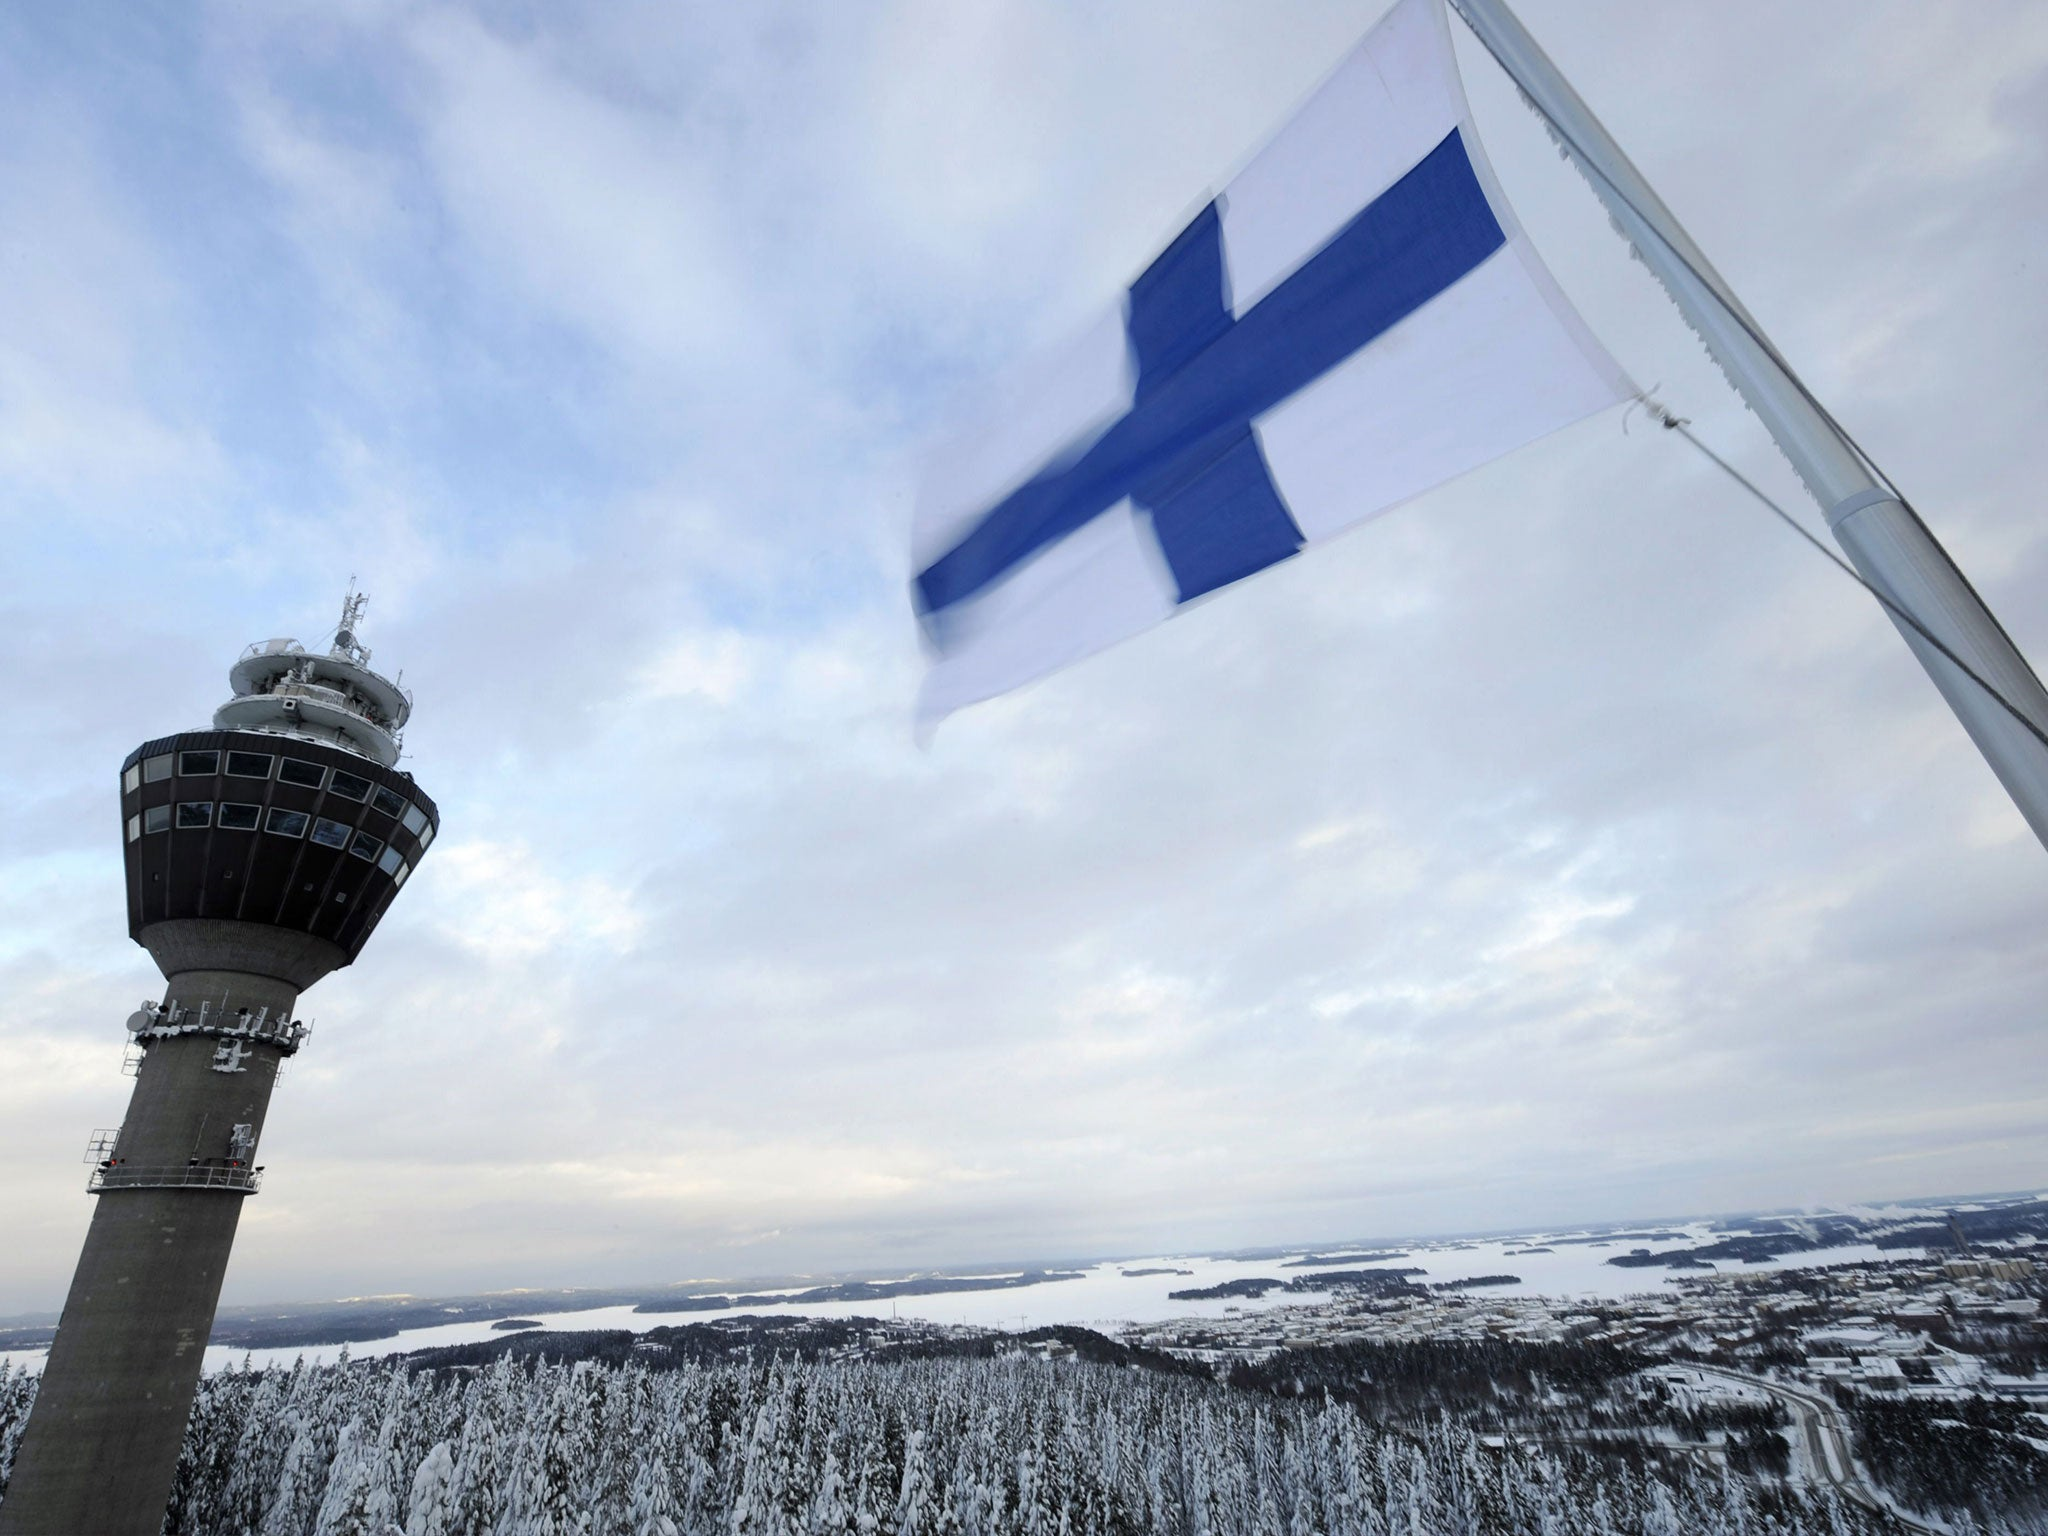 Finnish citizens given universal basic income report lower stress levels and greater incentive to work